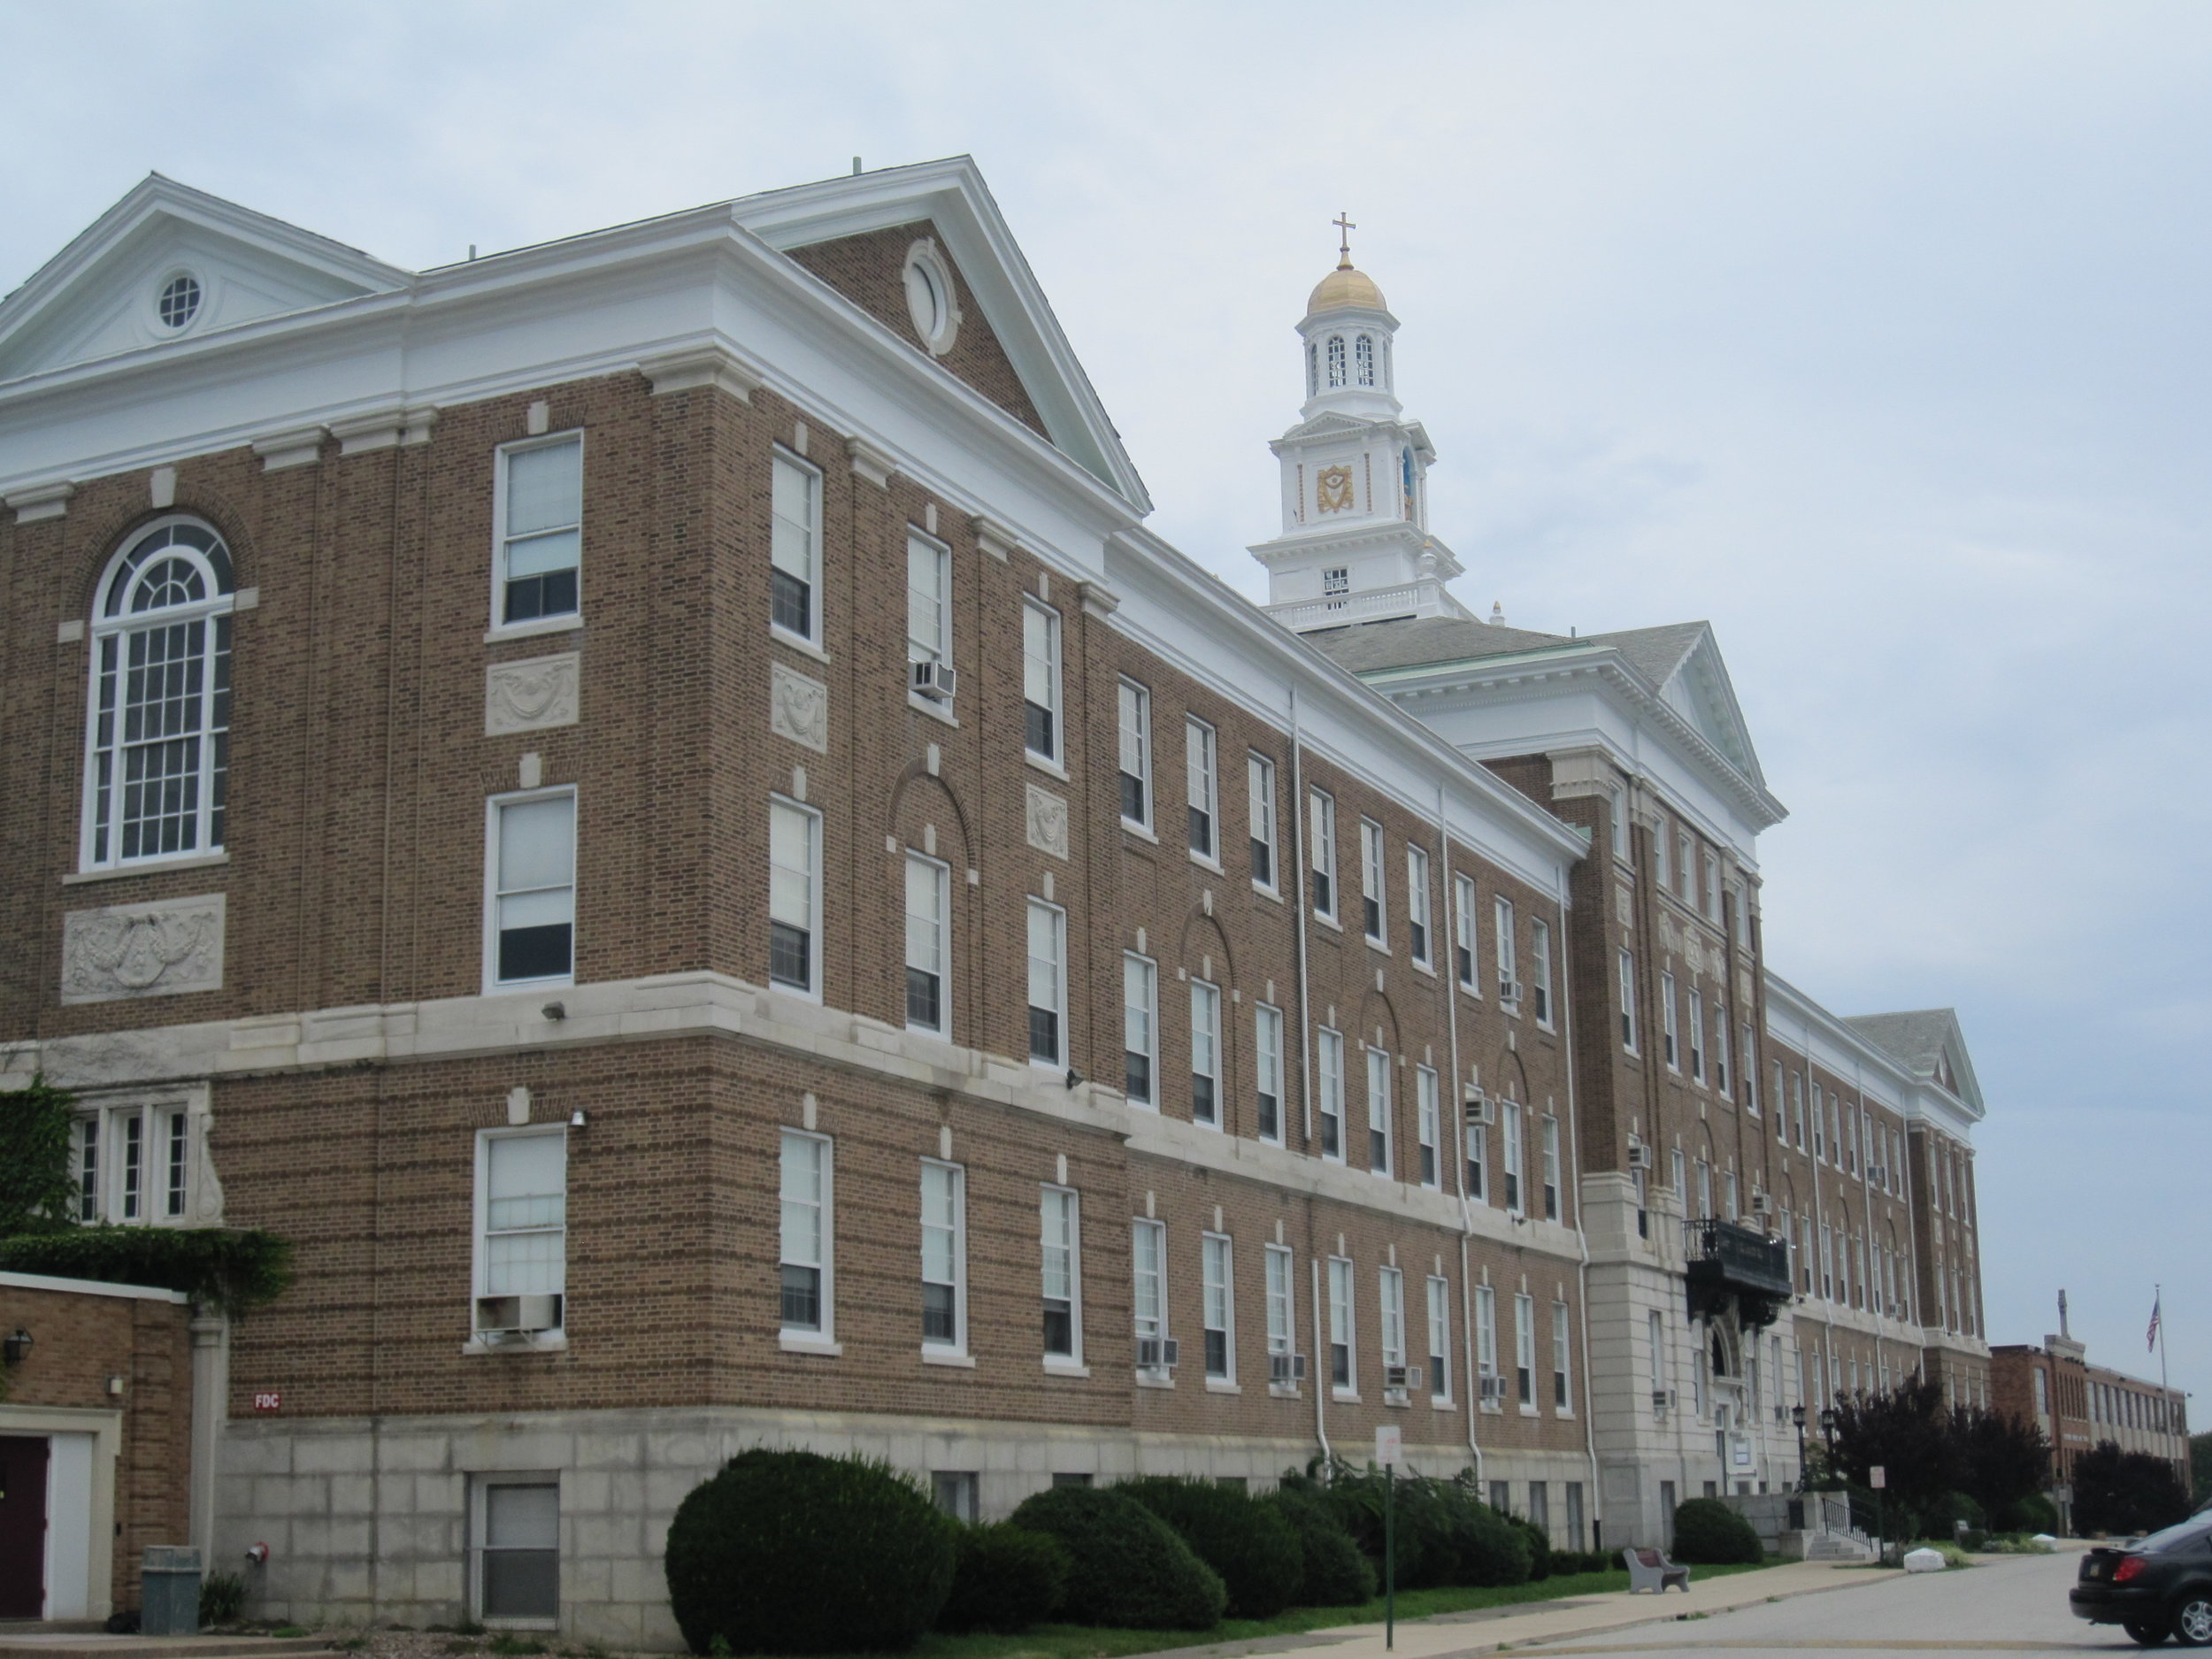 The old Archbishop Prendergast High School building. Photo courtesy of Scott McLeod under a  Creative Commons Attribution 2.0 Generic  license.